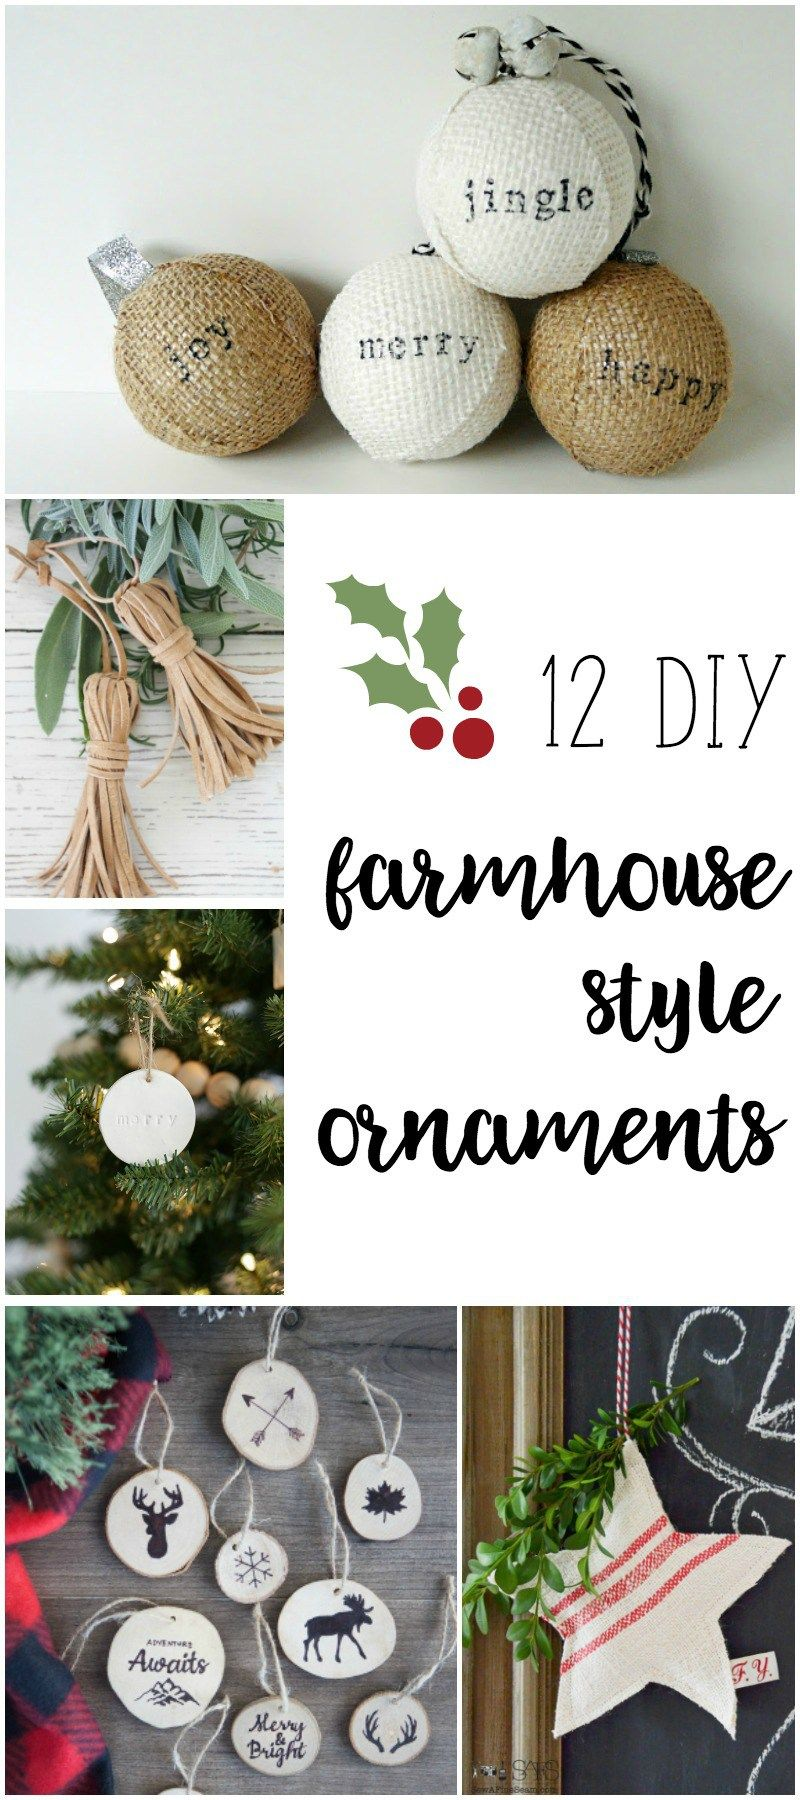 Farmhouse Style Ornaments for Christmas | Christmas Time | Pinterest ...